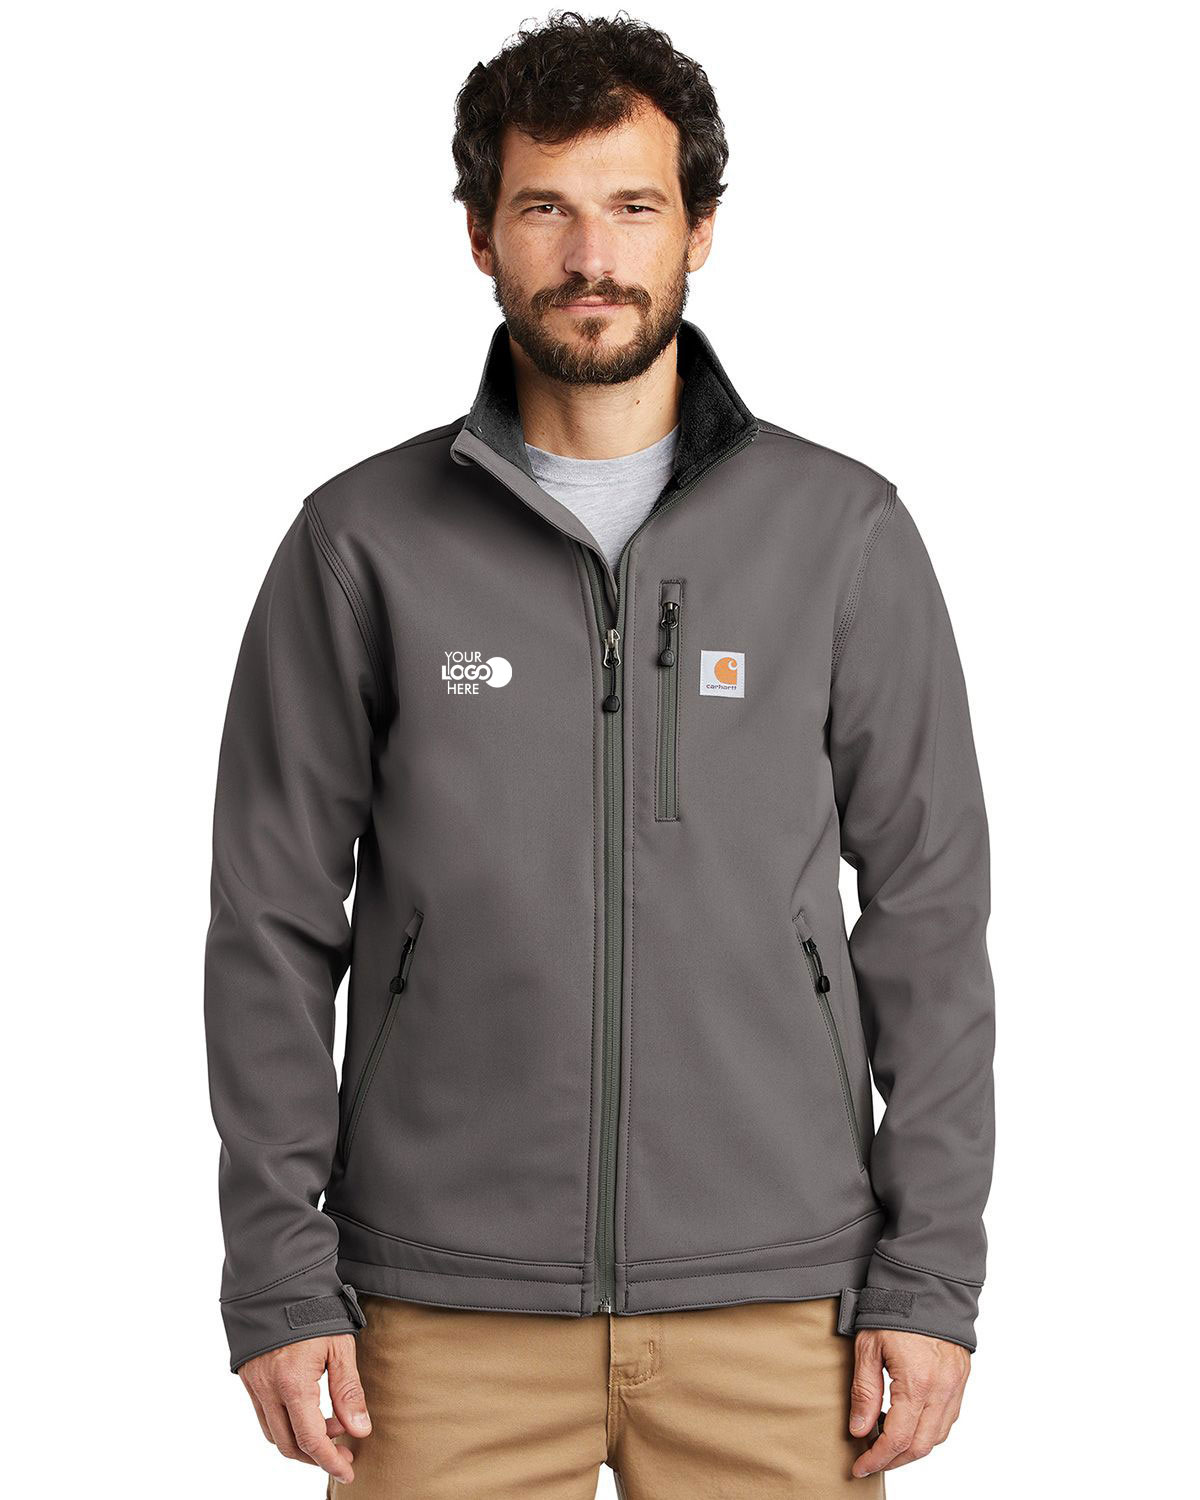 Carhartt CT102199 Crowley Soft Shell Jacket